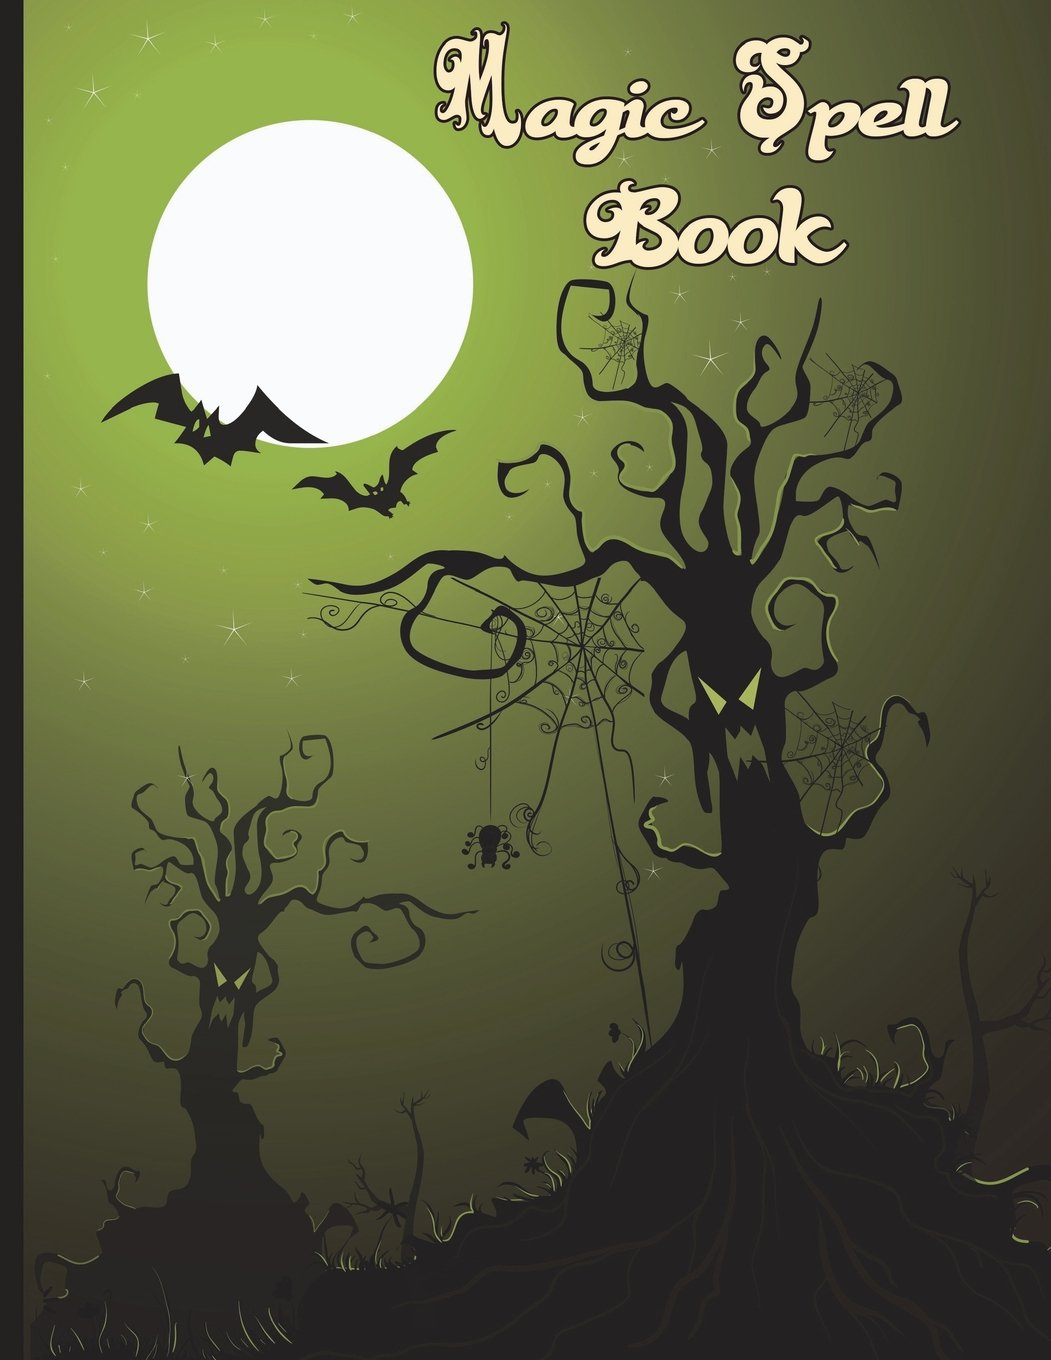 Magic Spell Book: Book of Shadows Grimoire 90 Blank Attractive Spells Records Paperback Notebook Journal 8.5 X 11 Magic Gift Spell Book Spooky Tree Bats Full Moon Cover ebook